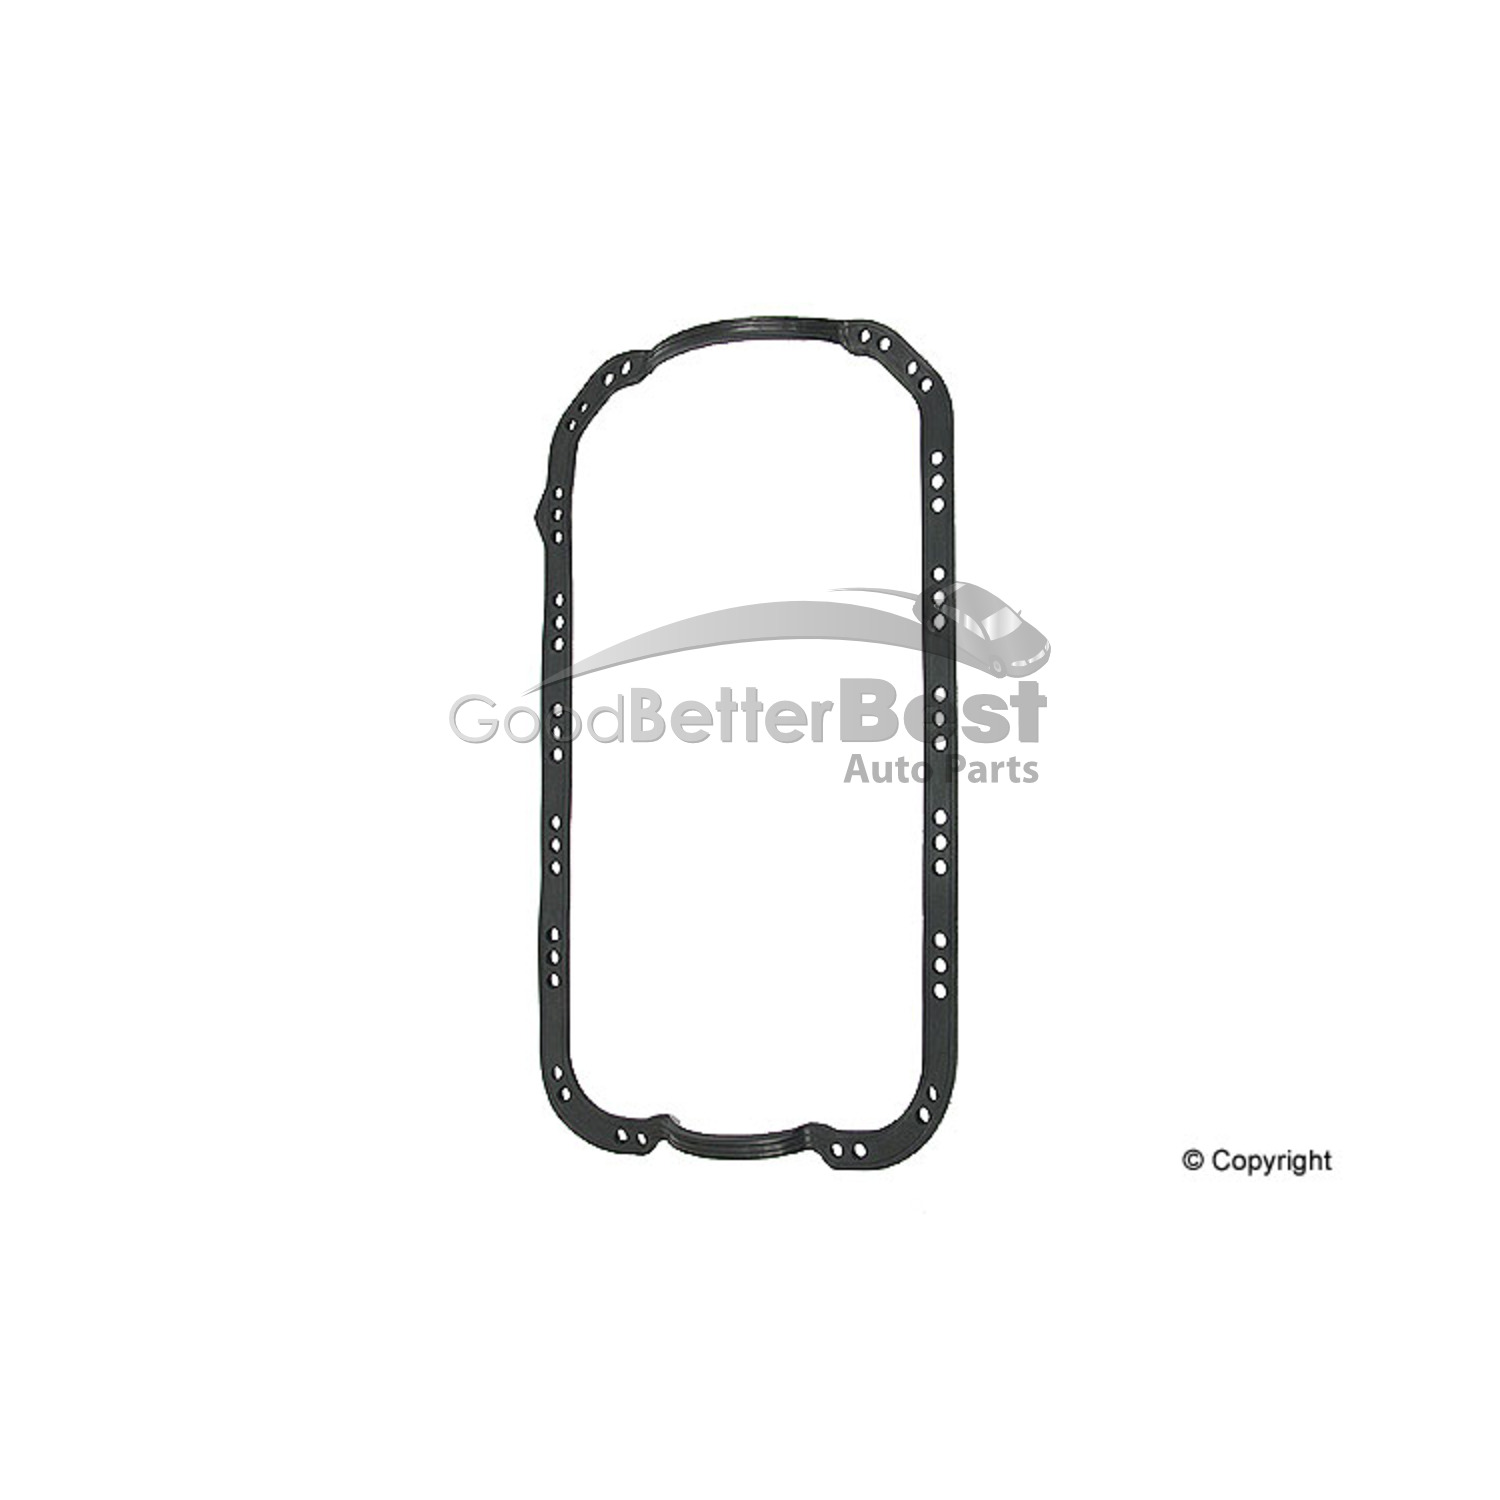 New Nippon Reinz Engine Oil Pan Gasket P2a014 For